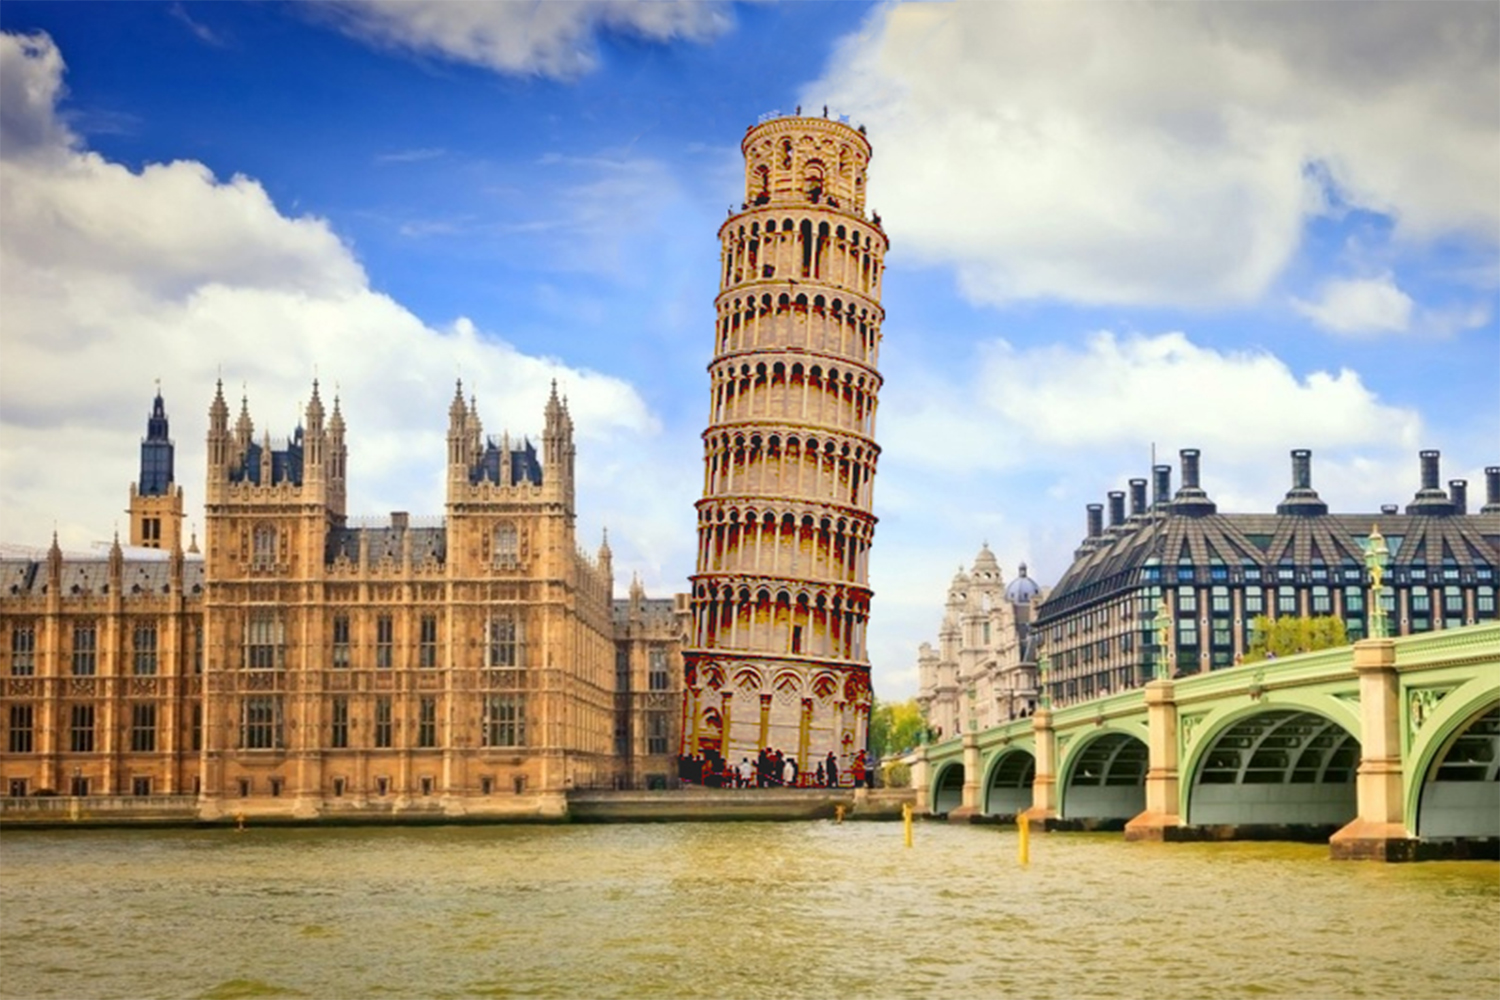 What if Pisa Tower were in London2